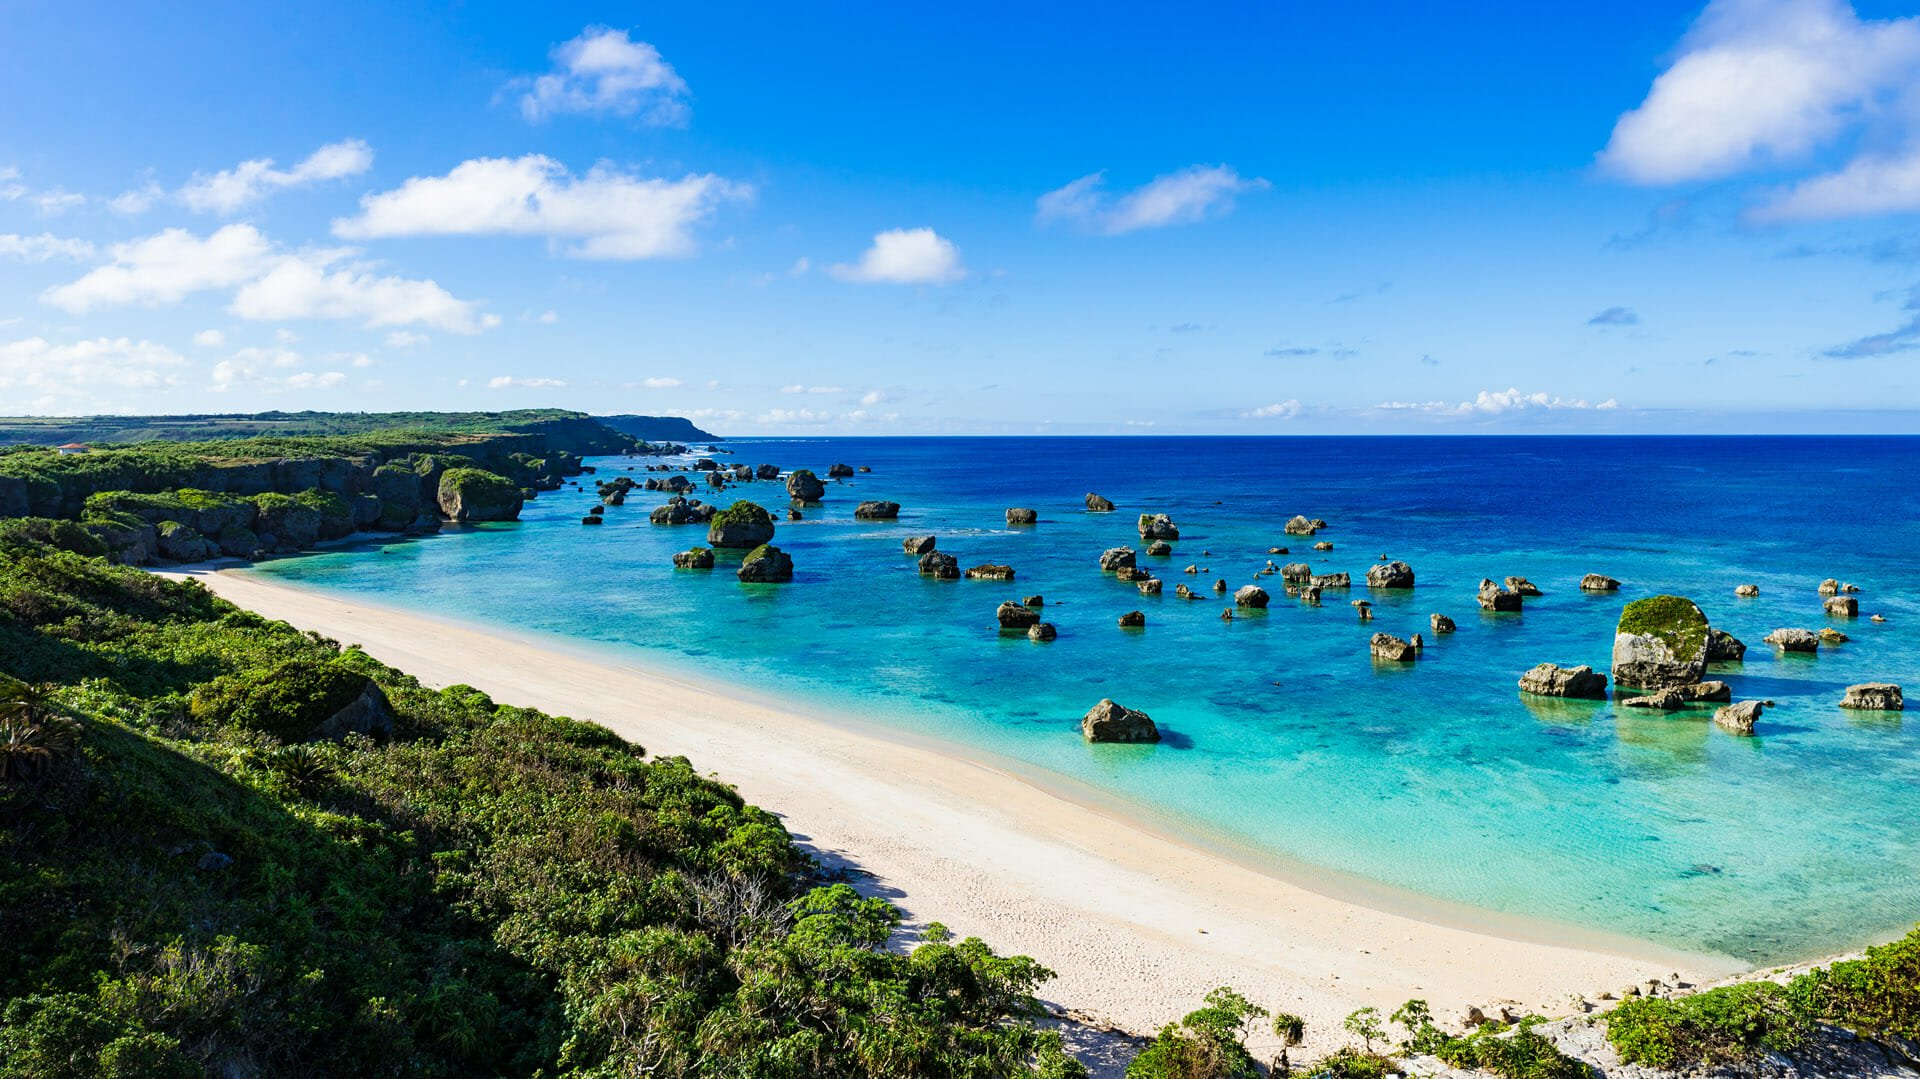 sea-shore-seascape-okinawa-japan